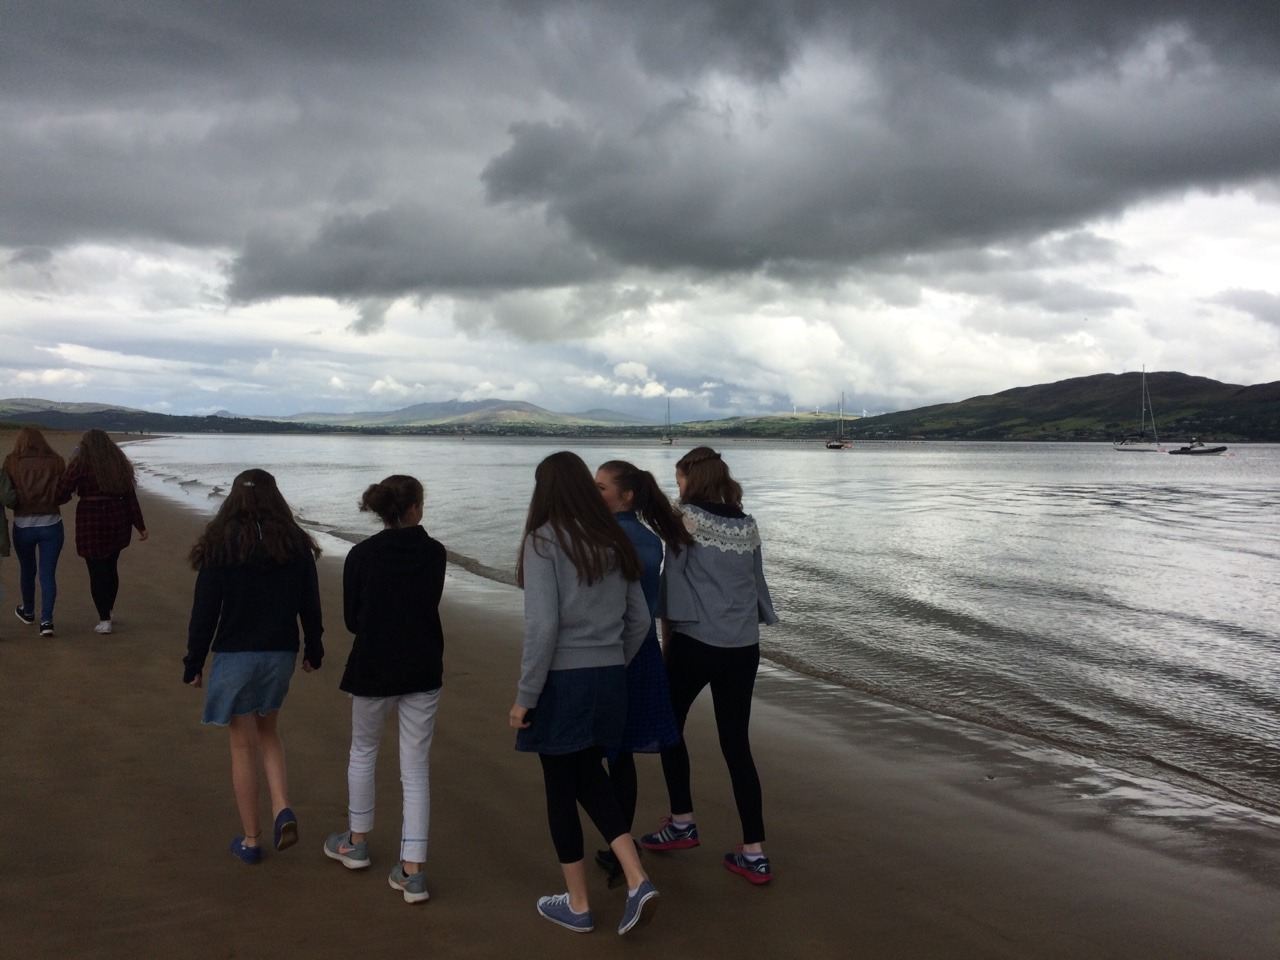 Thankfully it stayed dry for the walk at Rathmullan